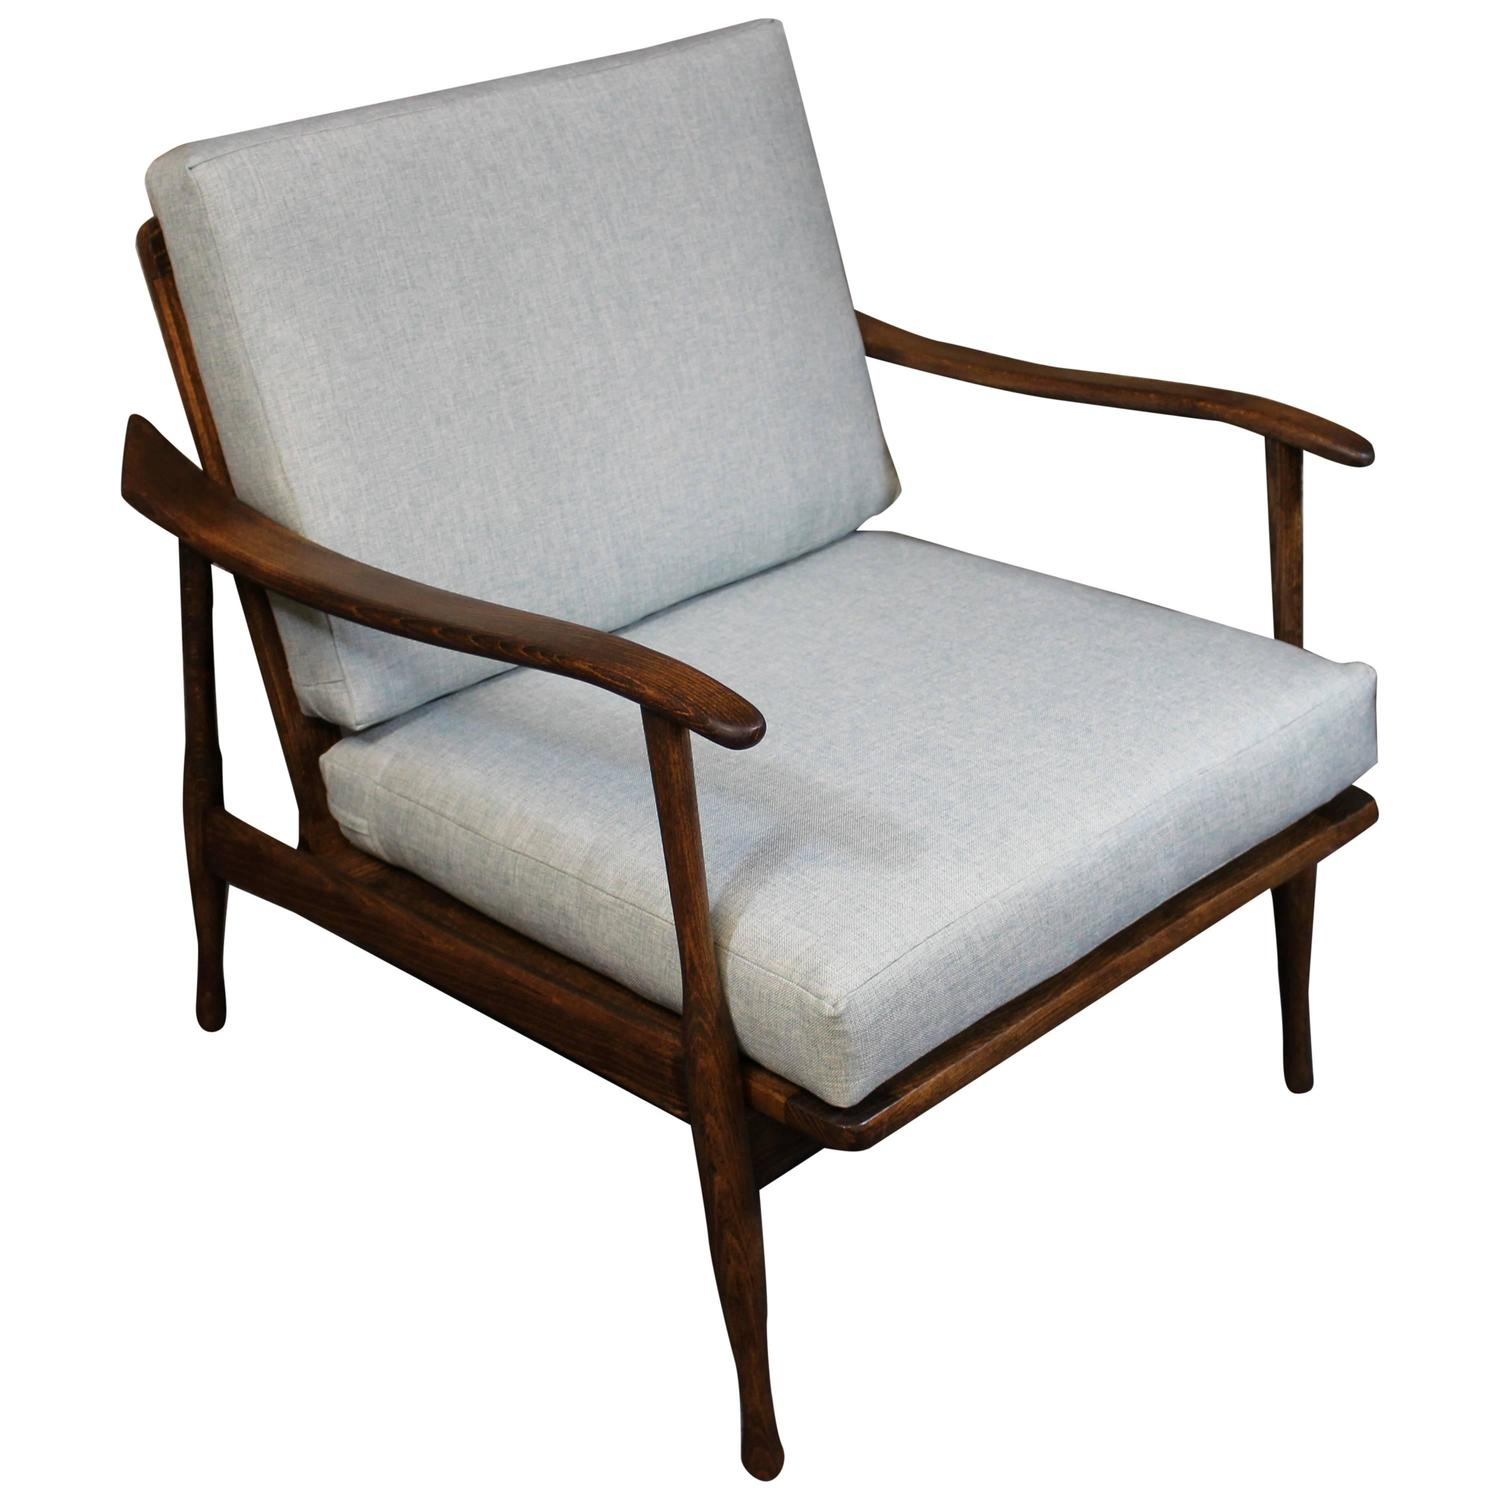 Mid century modern lounge chair at 1stdibs for Furniture chairs